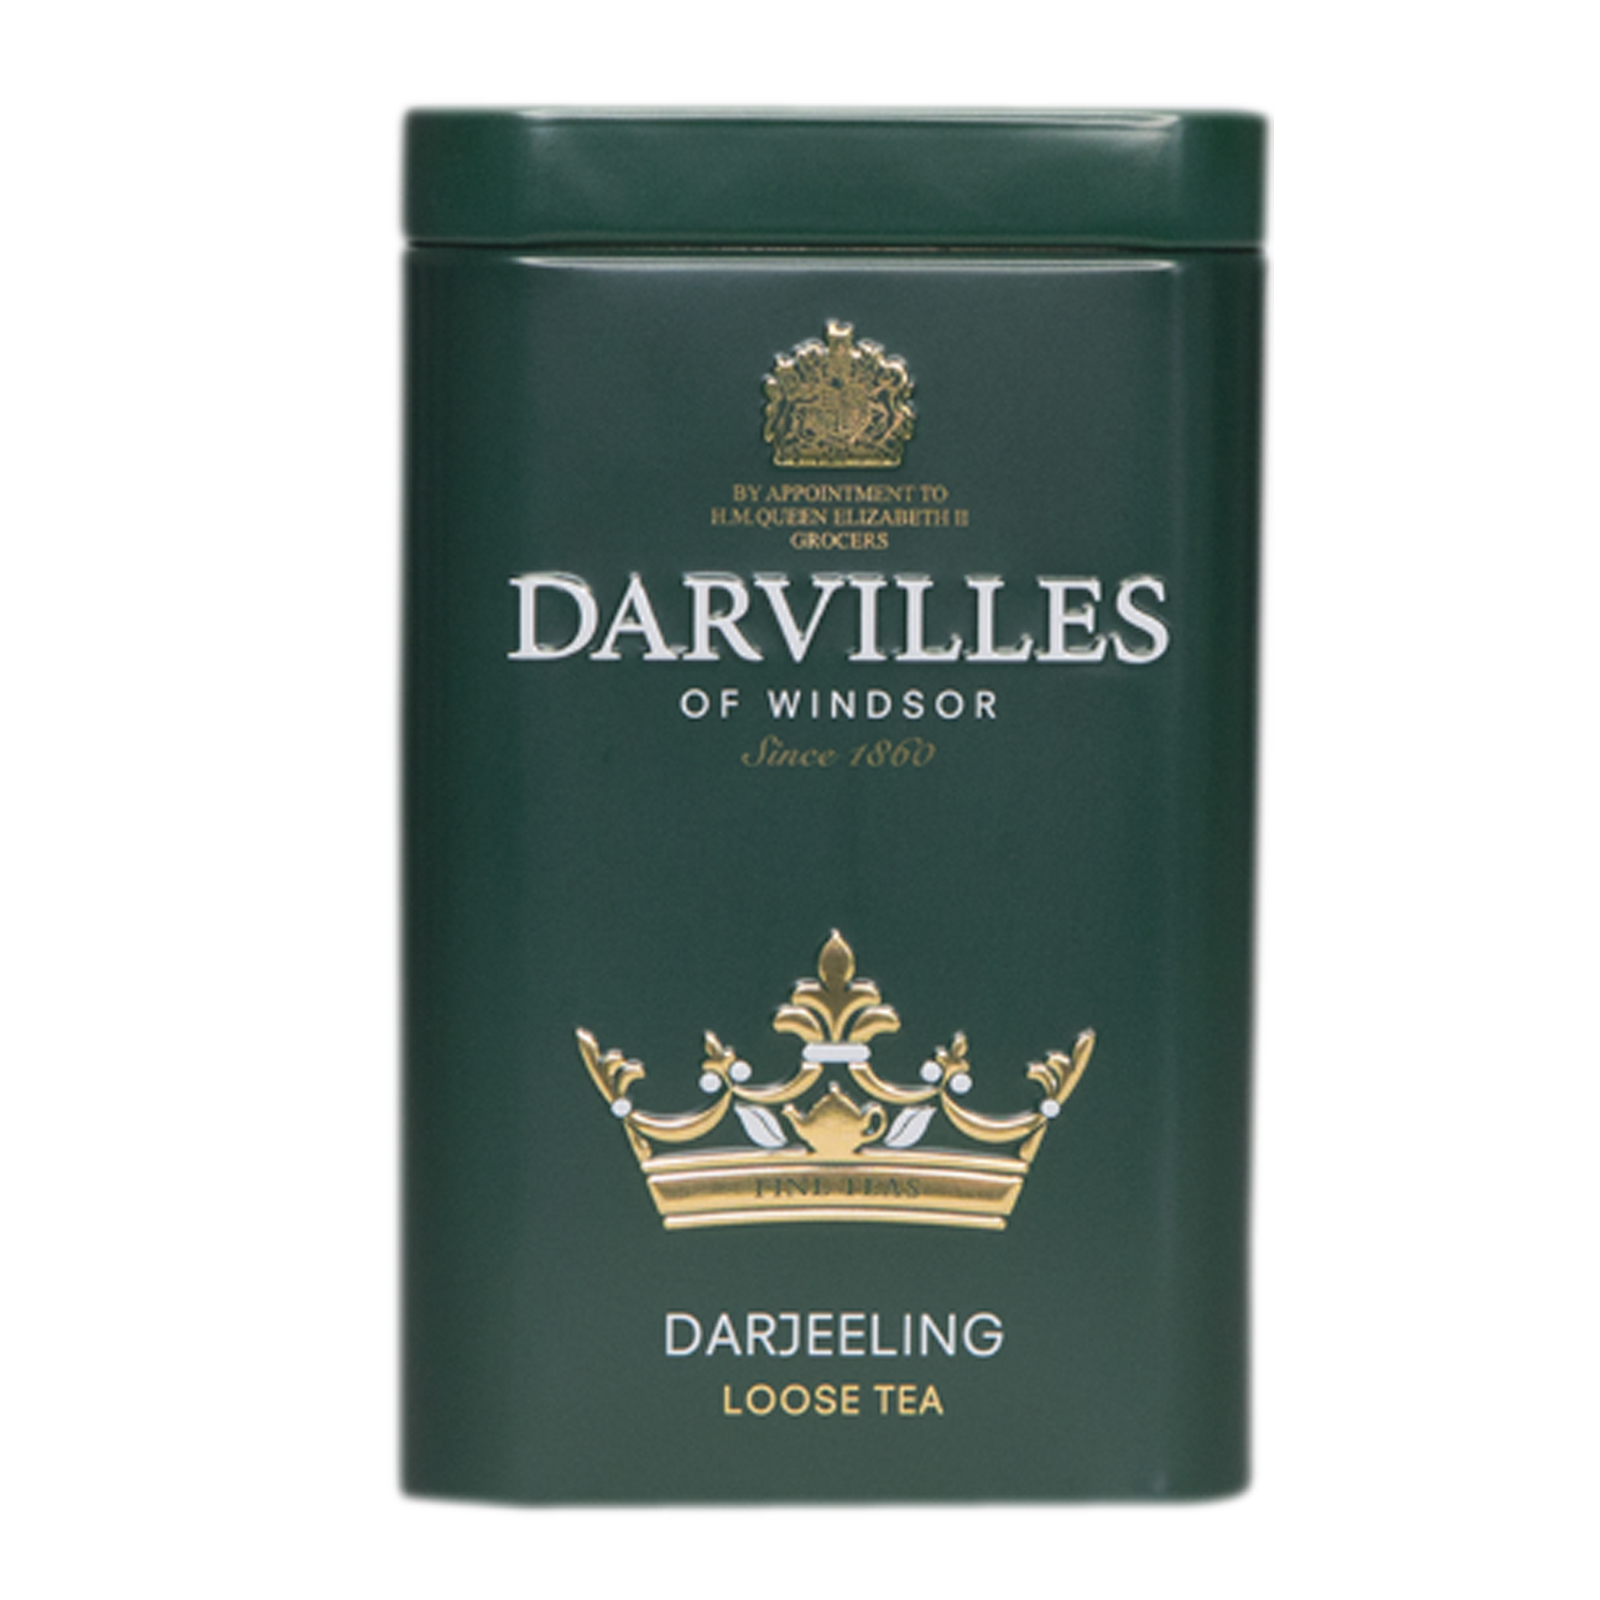 Darvilles of Windsor Darjeeling Loose Tea Caddy 100gm